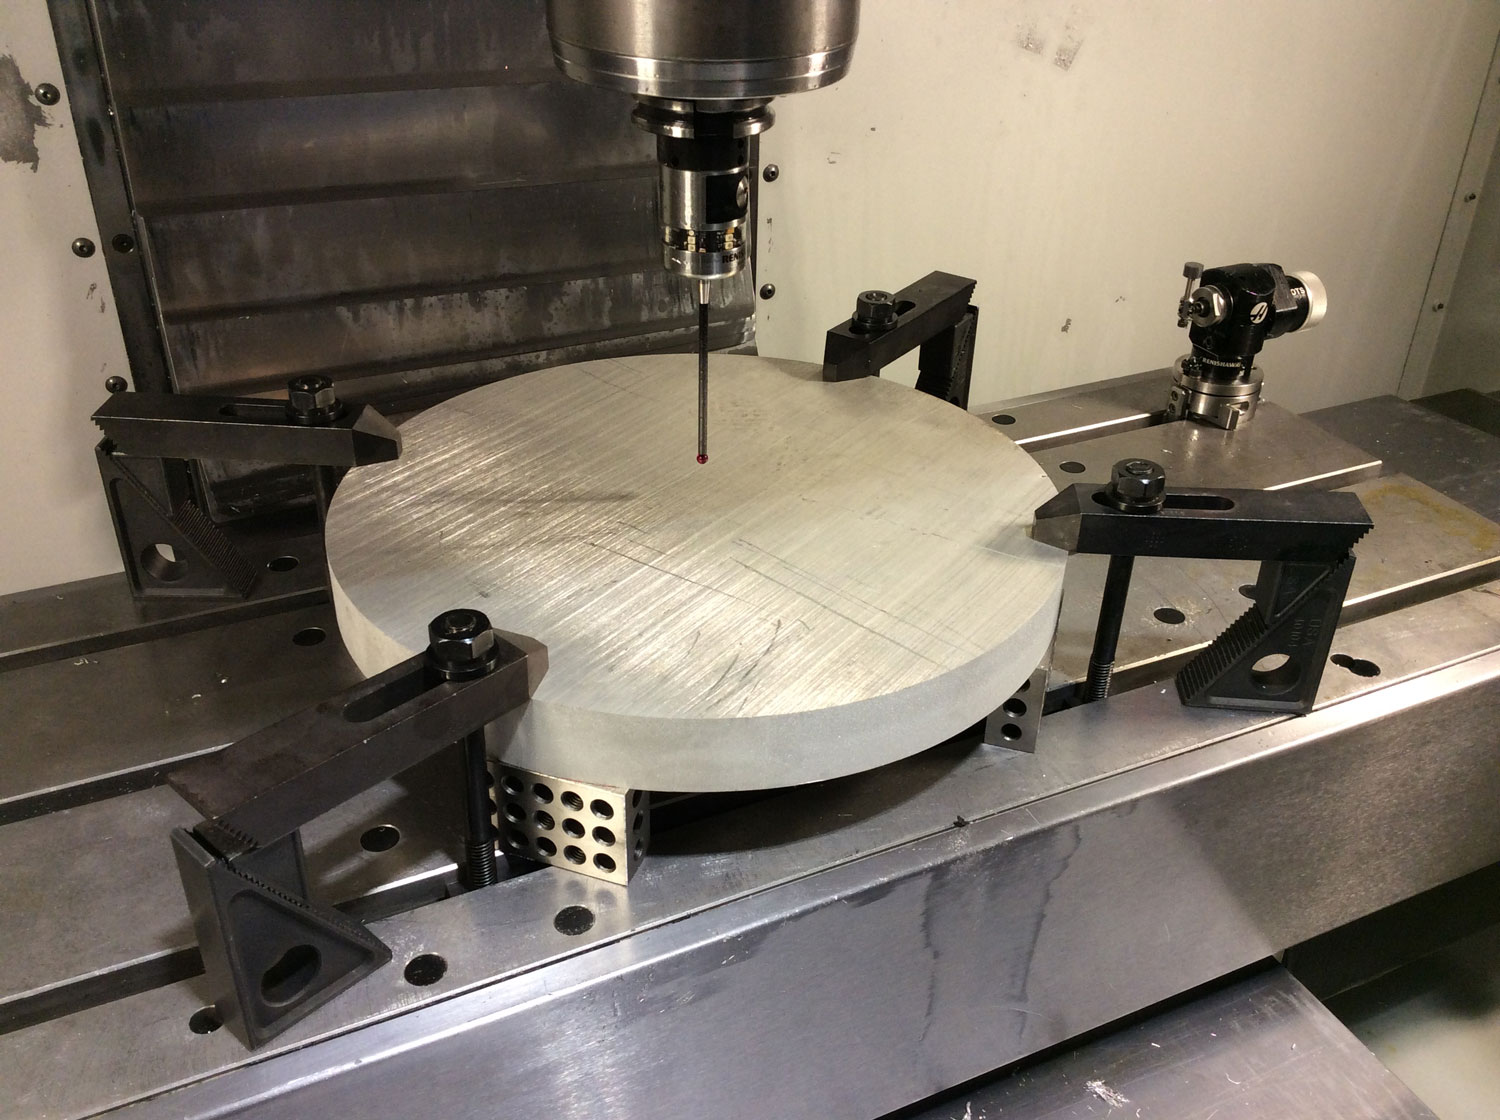 Picture of OP-1 Setup in Fusion 360 and on the Haas VF2 Milling Machine